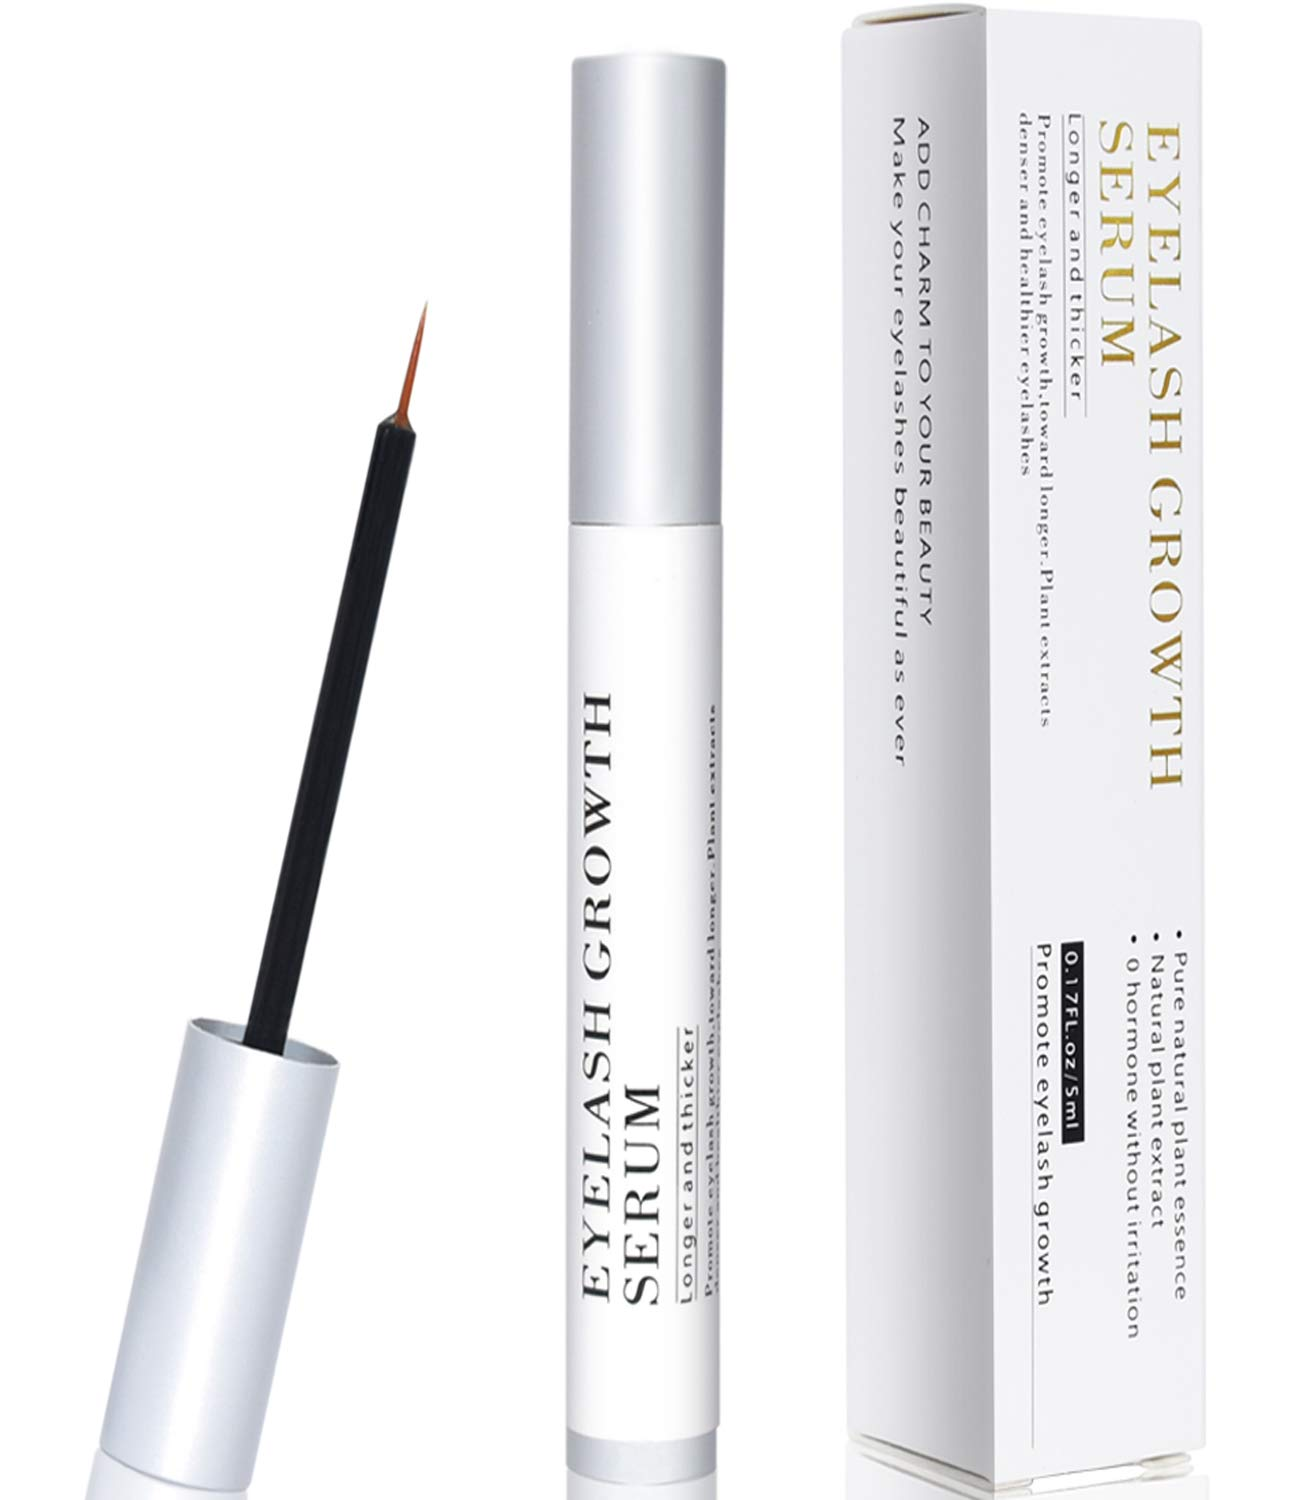 Eyelash Growth Serum, Eyebrow Booster Natural Lavish Lash Enhancer, Rapid Brow Lashes Growing Treatment for Long Thick Looking Fuller Lashes and Brows Women Girls